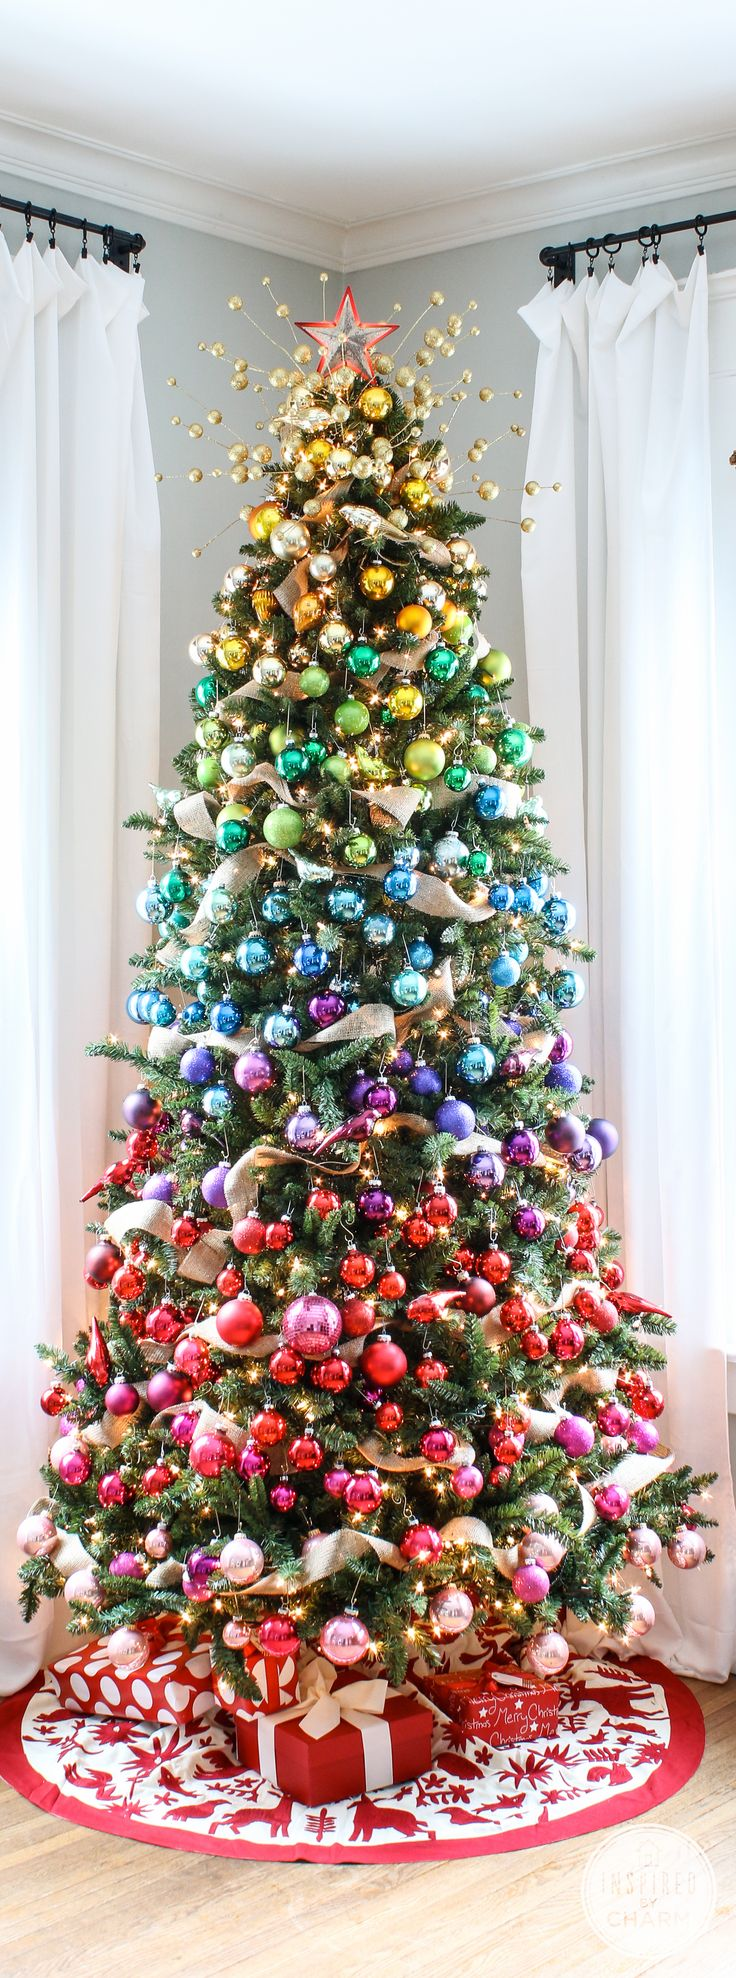 Colorful Christmas Tree Images.The Most Colorful And Sweet Christmas Trees And Decorations